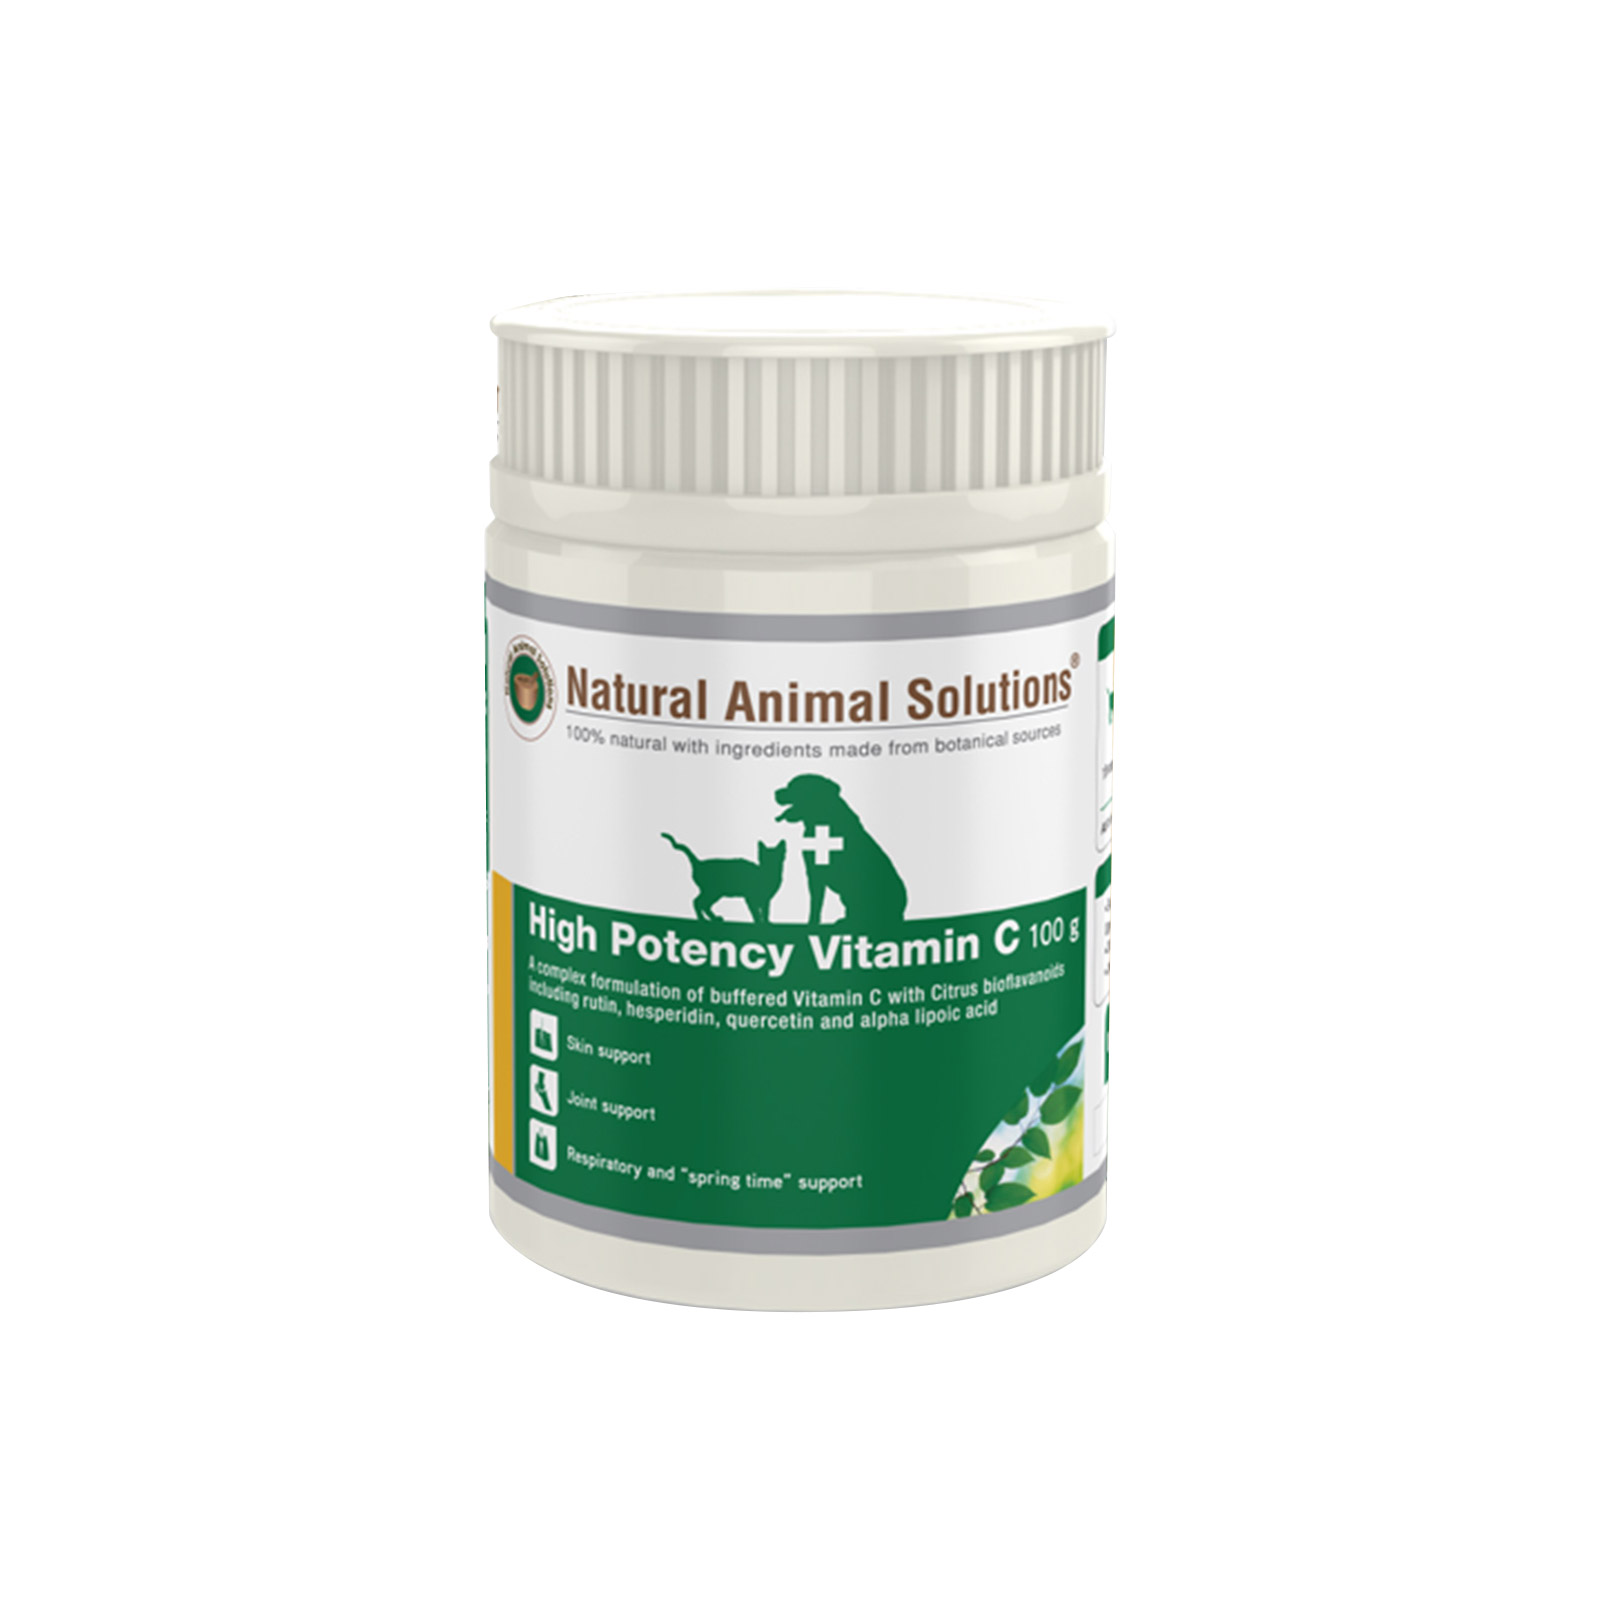 Natural Animal Solutions High Potency Vitamin C